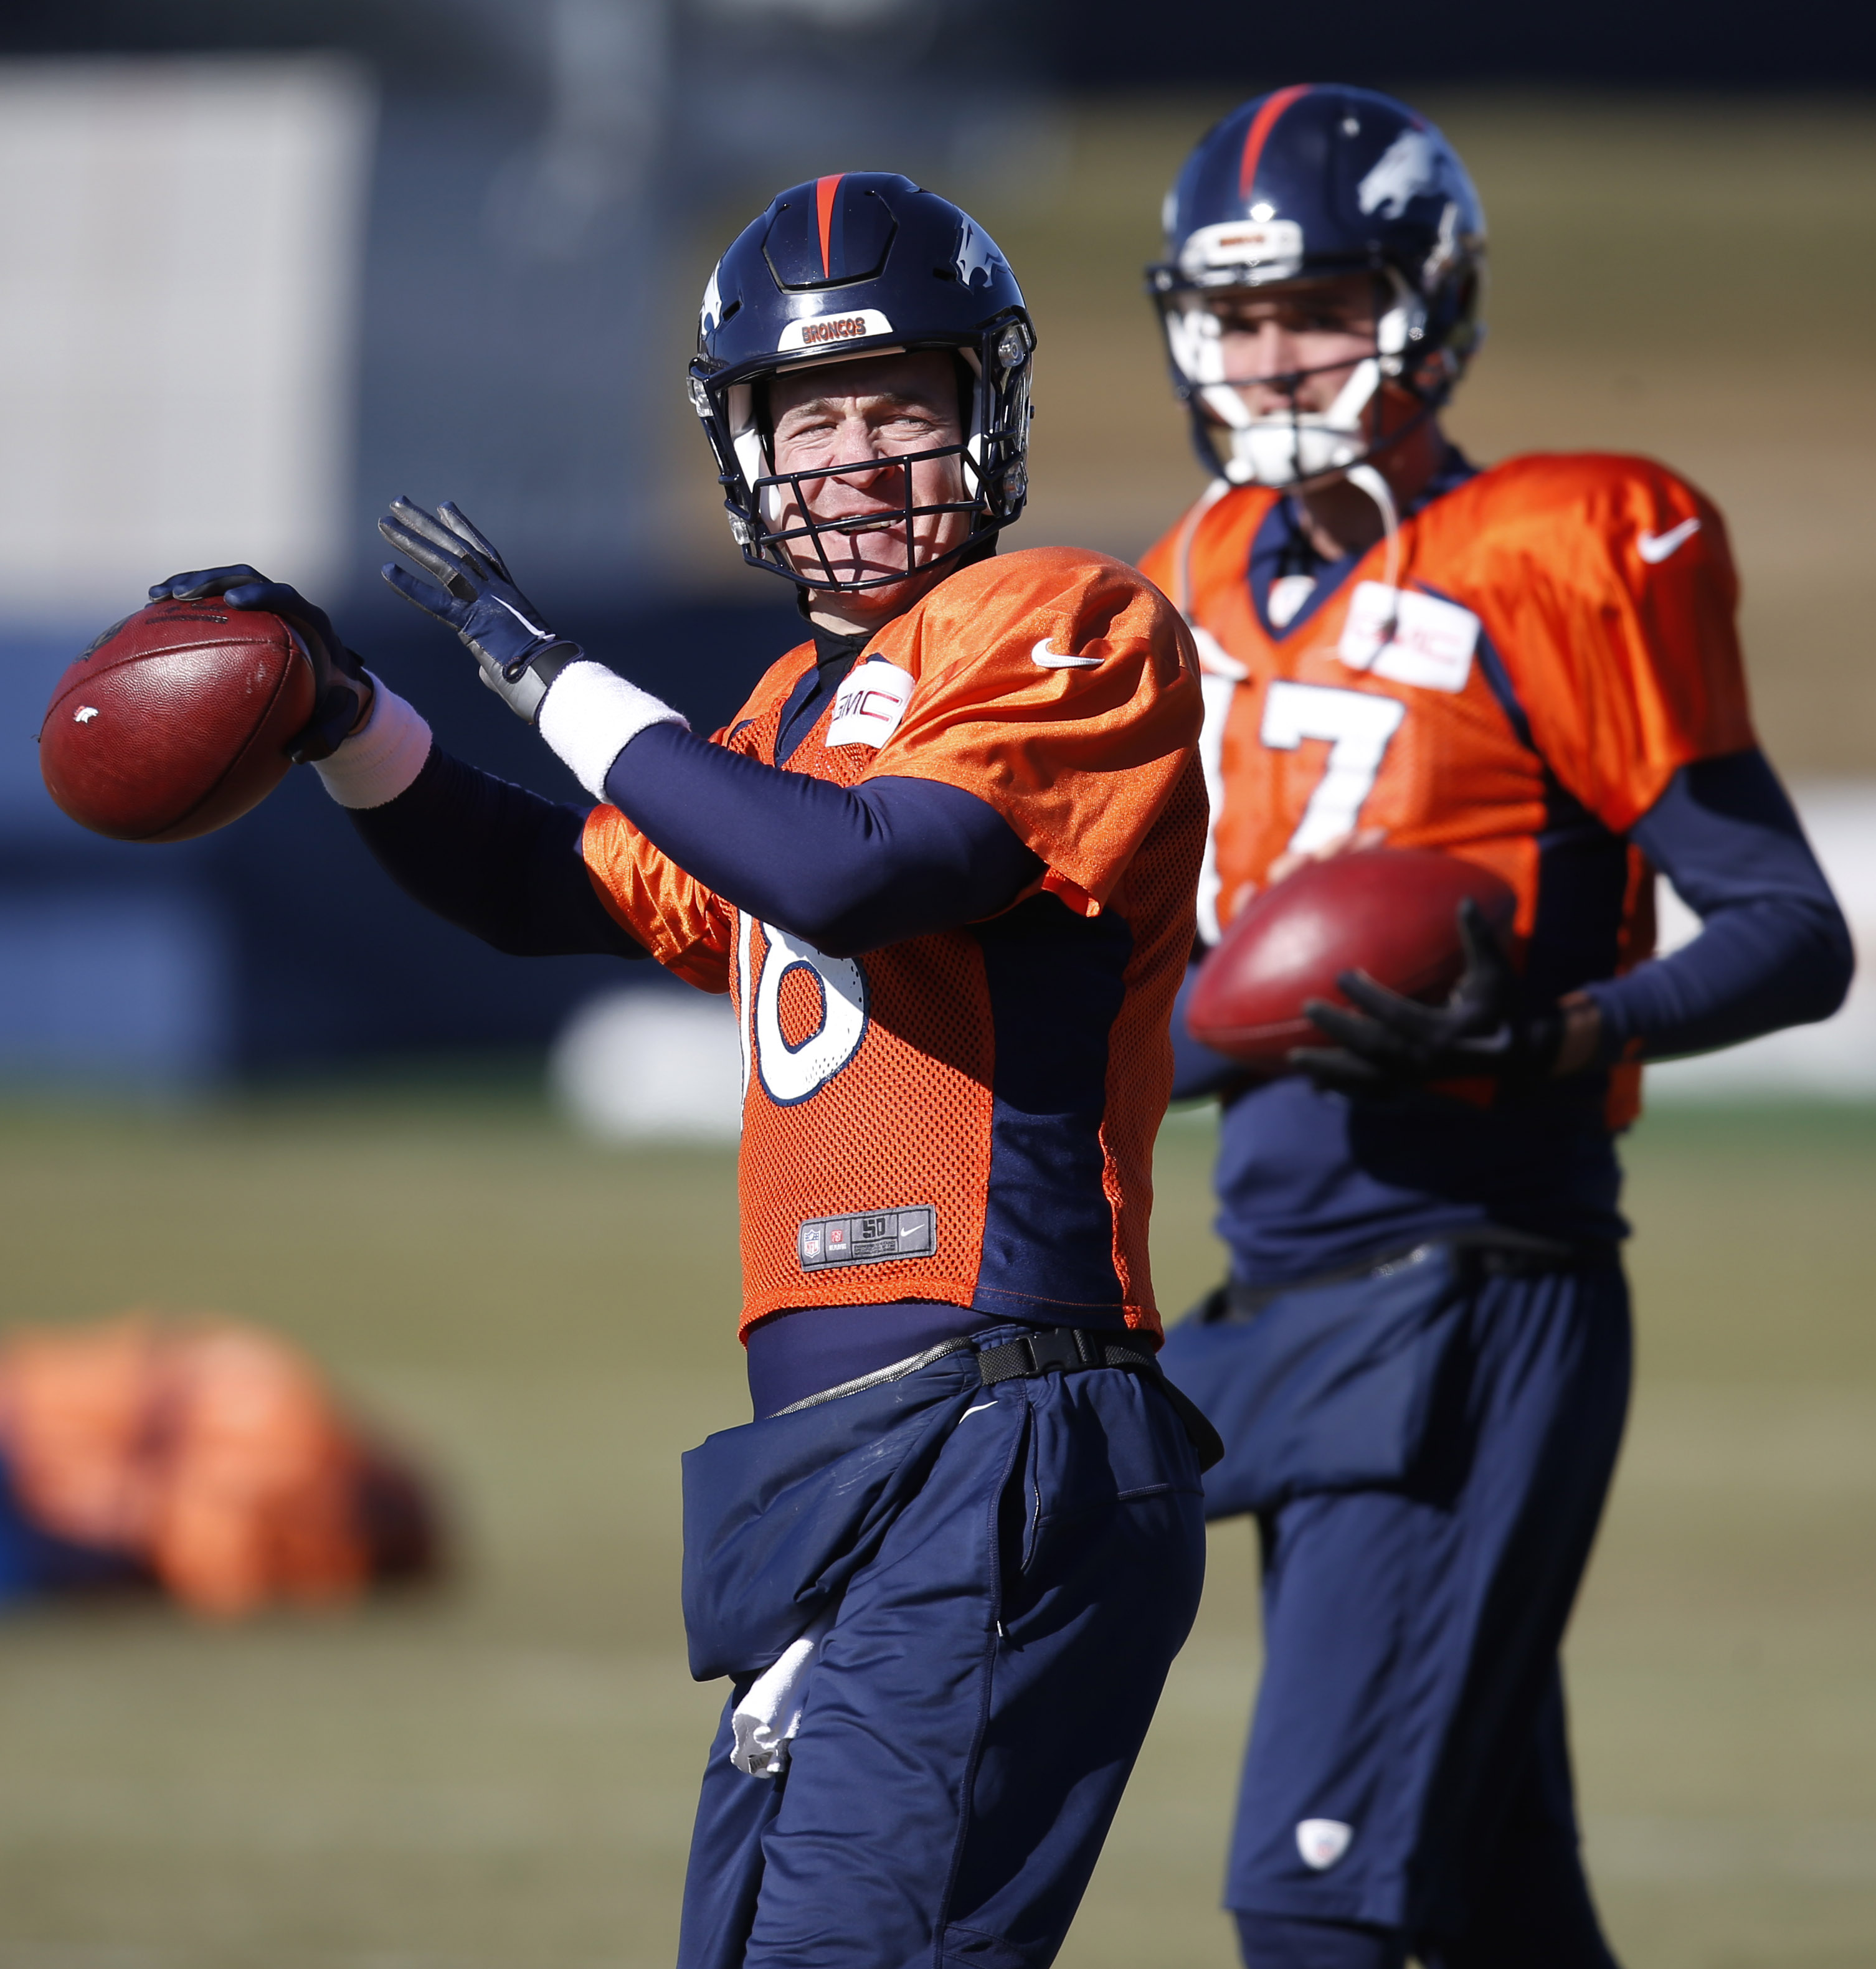 Denver Broncos quarterback Peyton Manning, front, throws a pass as backup quarterback Brock Osweiler looks on during an NFL football practice Thursday, Jan. 14, 2016, in Englewood, Colo. The Broncos are preparing for their divisional round AFC playoff gam